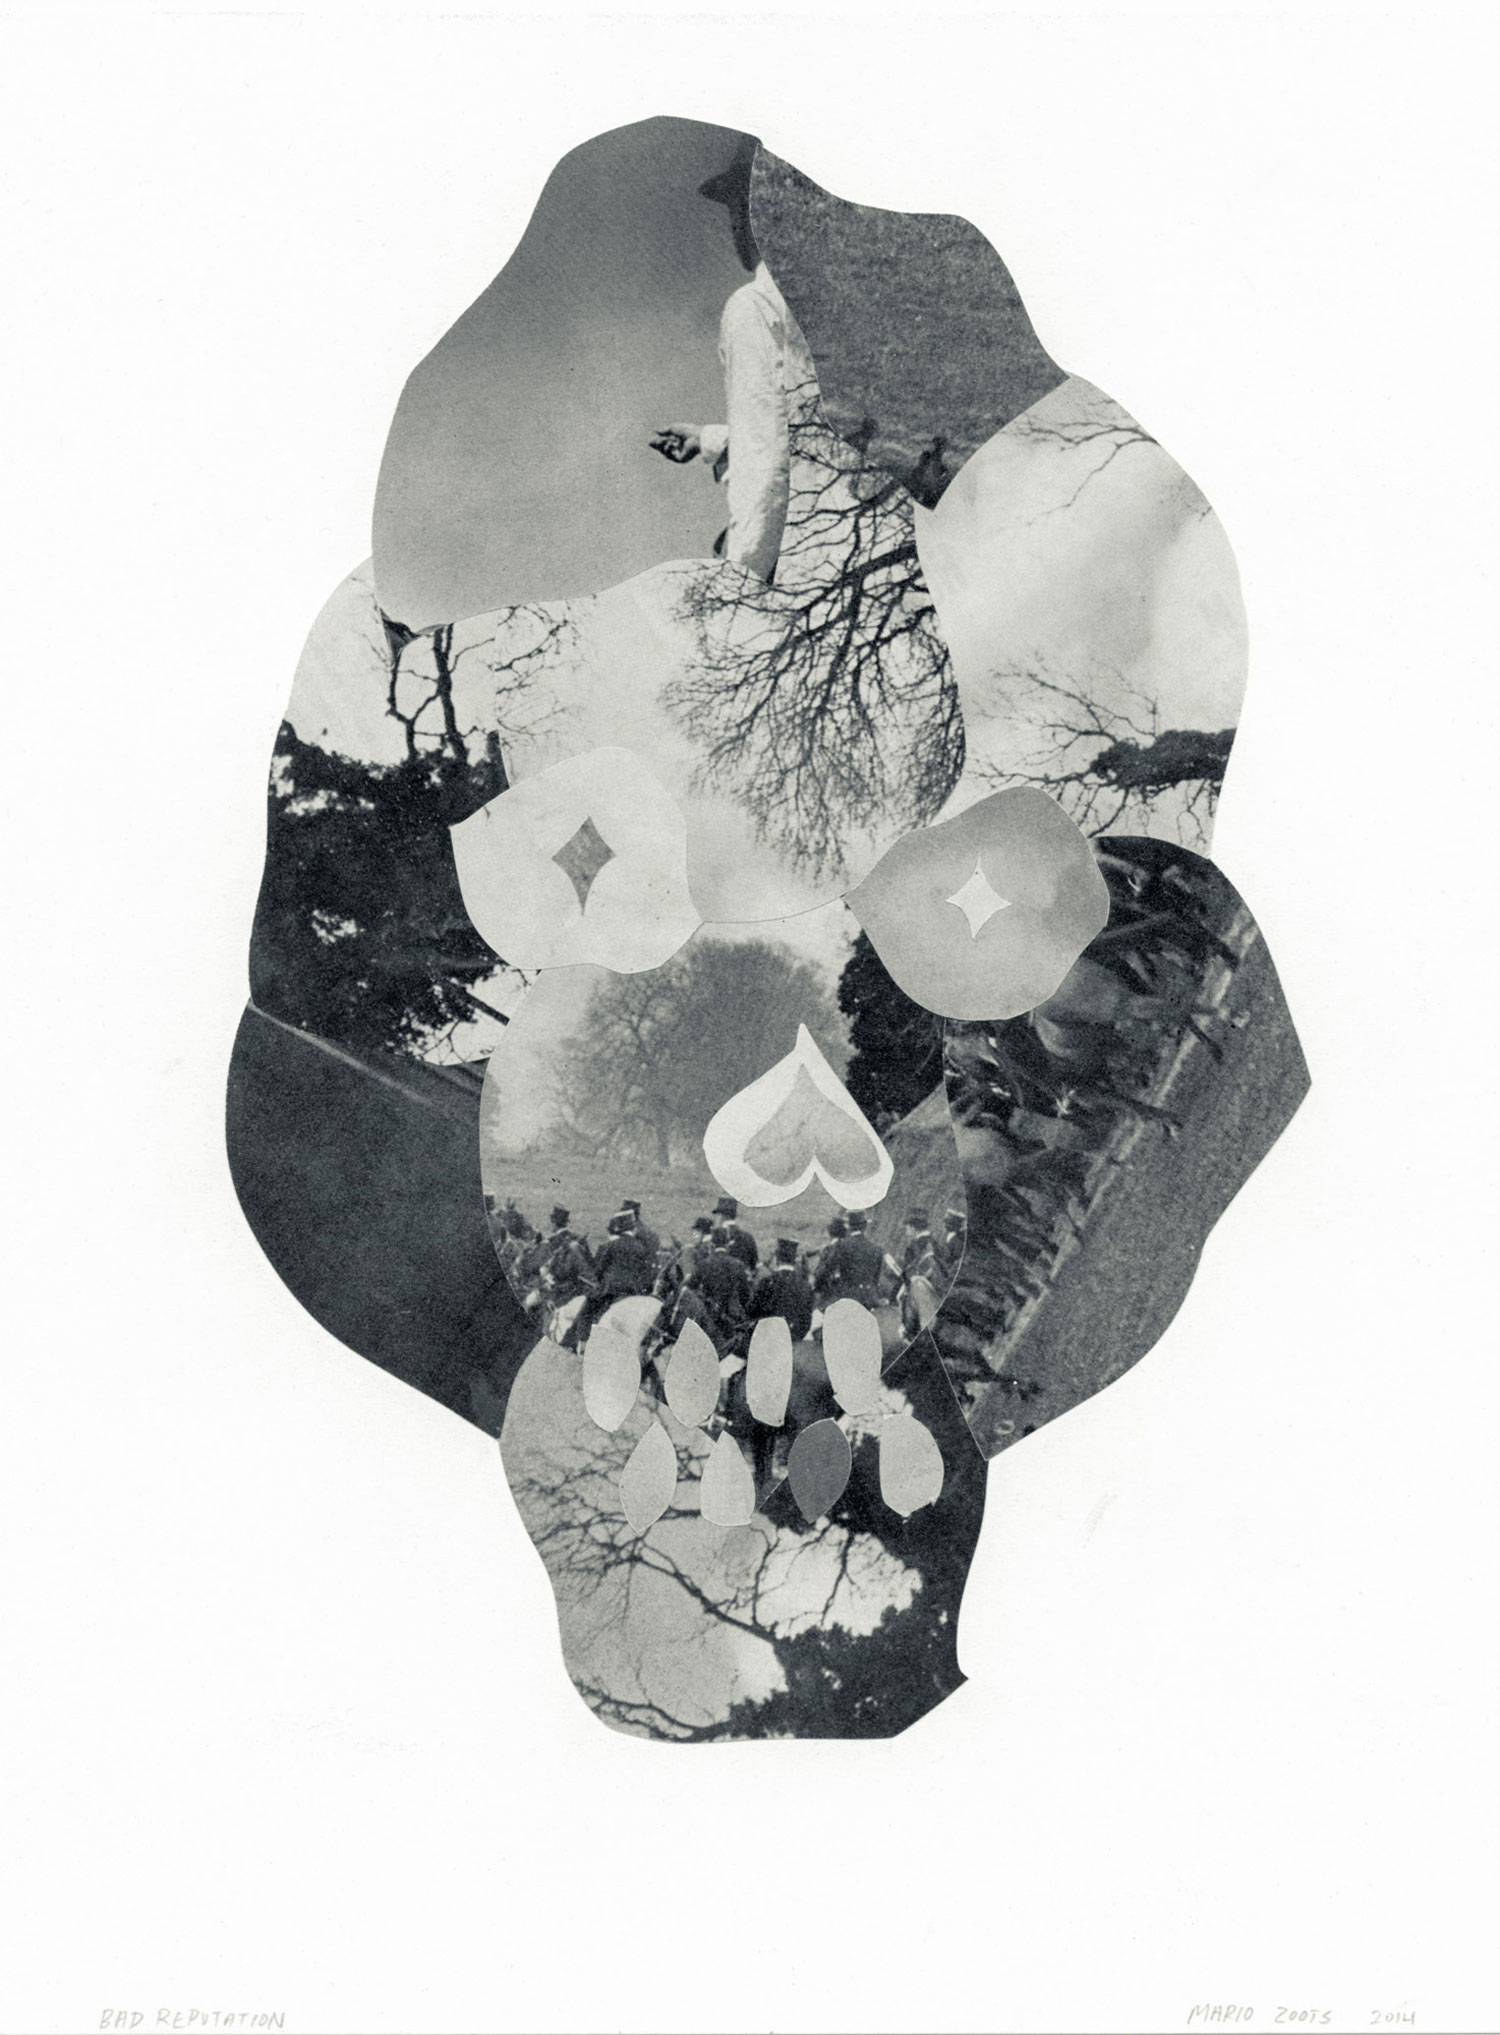 Zoots_Untitled-(Skull)_9x12_Collage-on-Paper_600.jpg